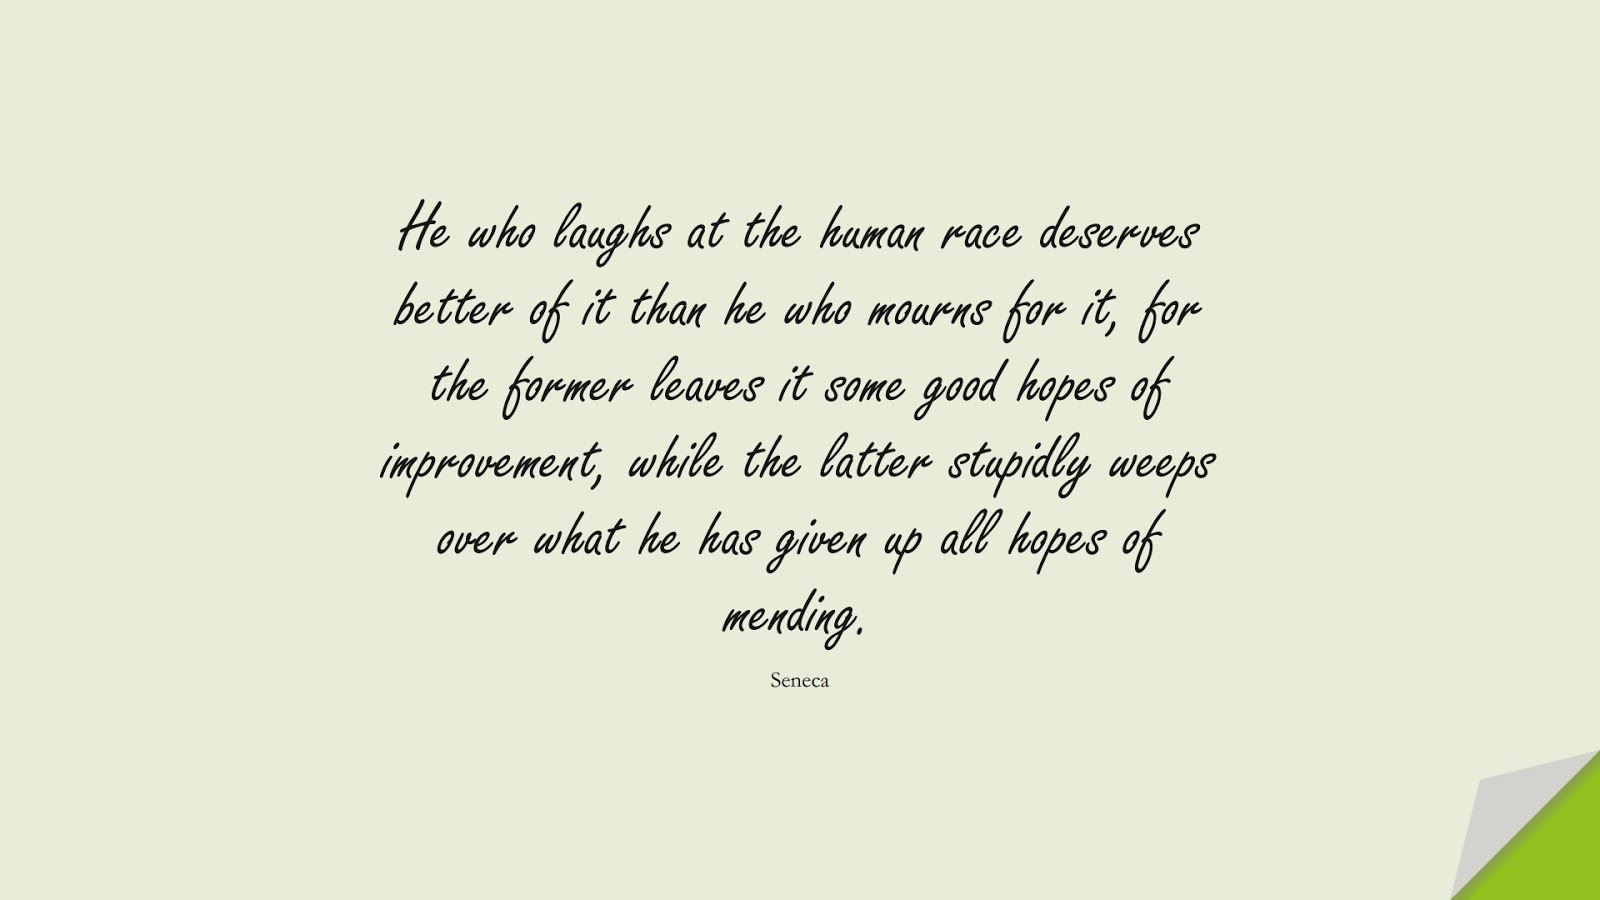 He who laughs at the human race deserves better of it than he who mourns for it, for the former leaves it some good hopes of improvement, while the latter stupidly weeps over what he has given up all hopes of mending. (Seneca);  #StoicQuotes